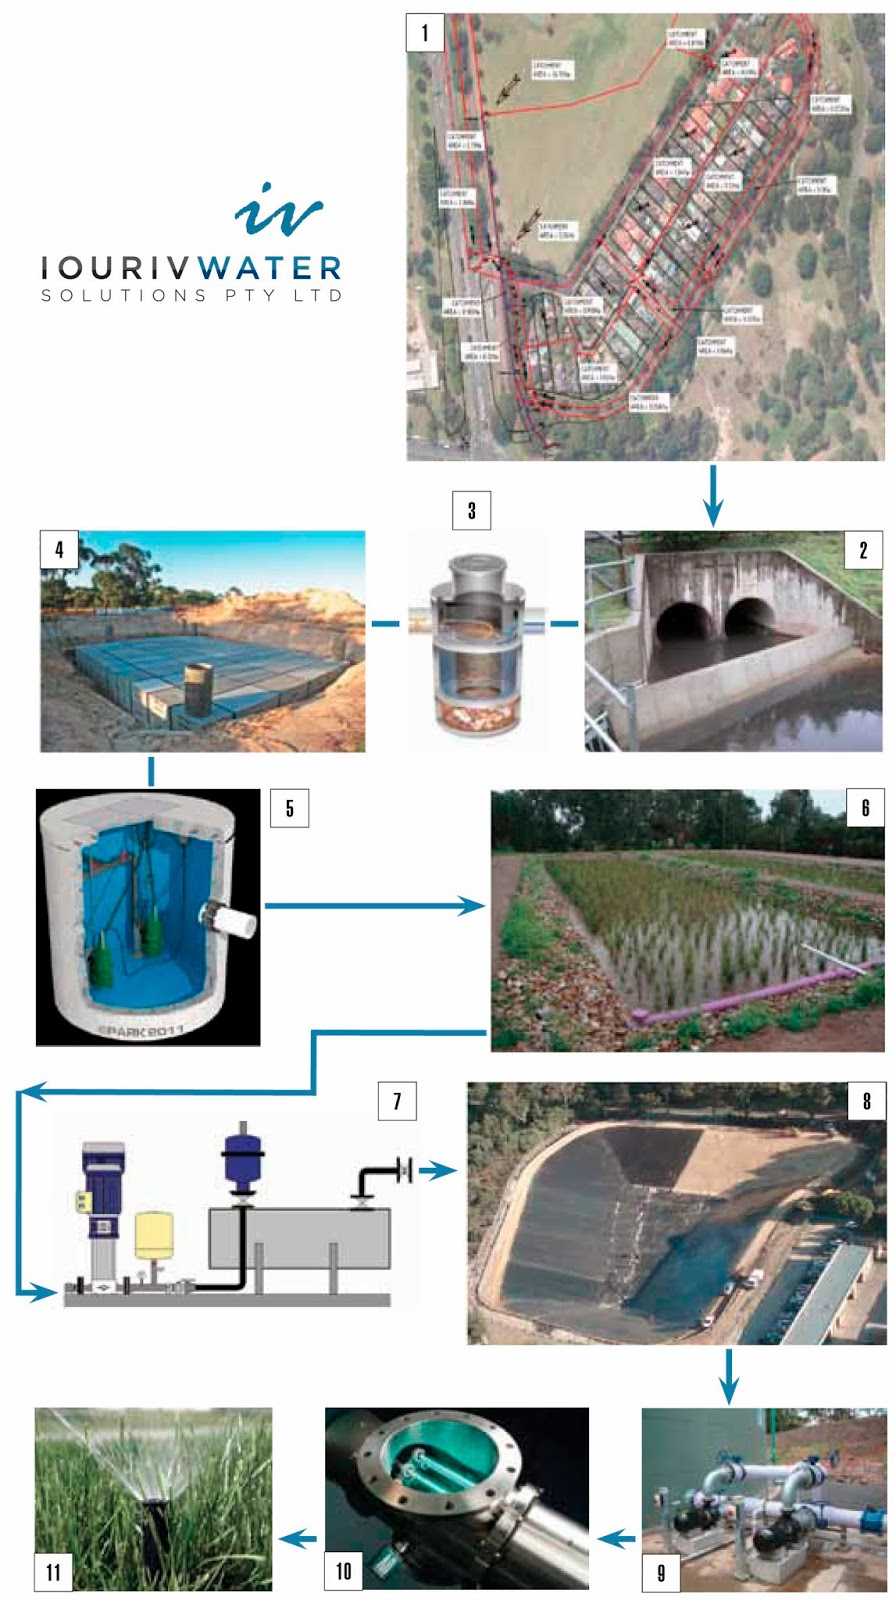 Stormwater Harvesting System Components